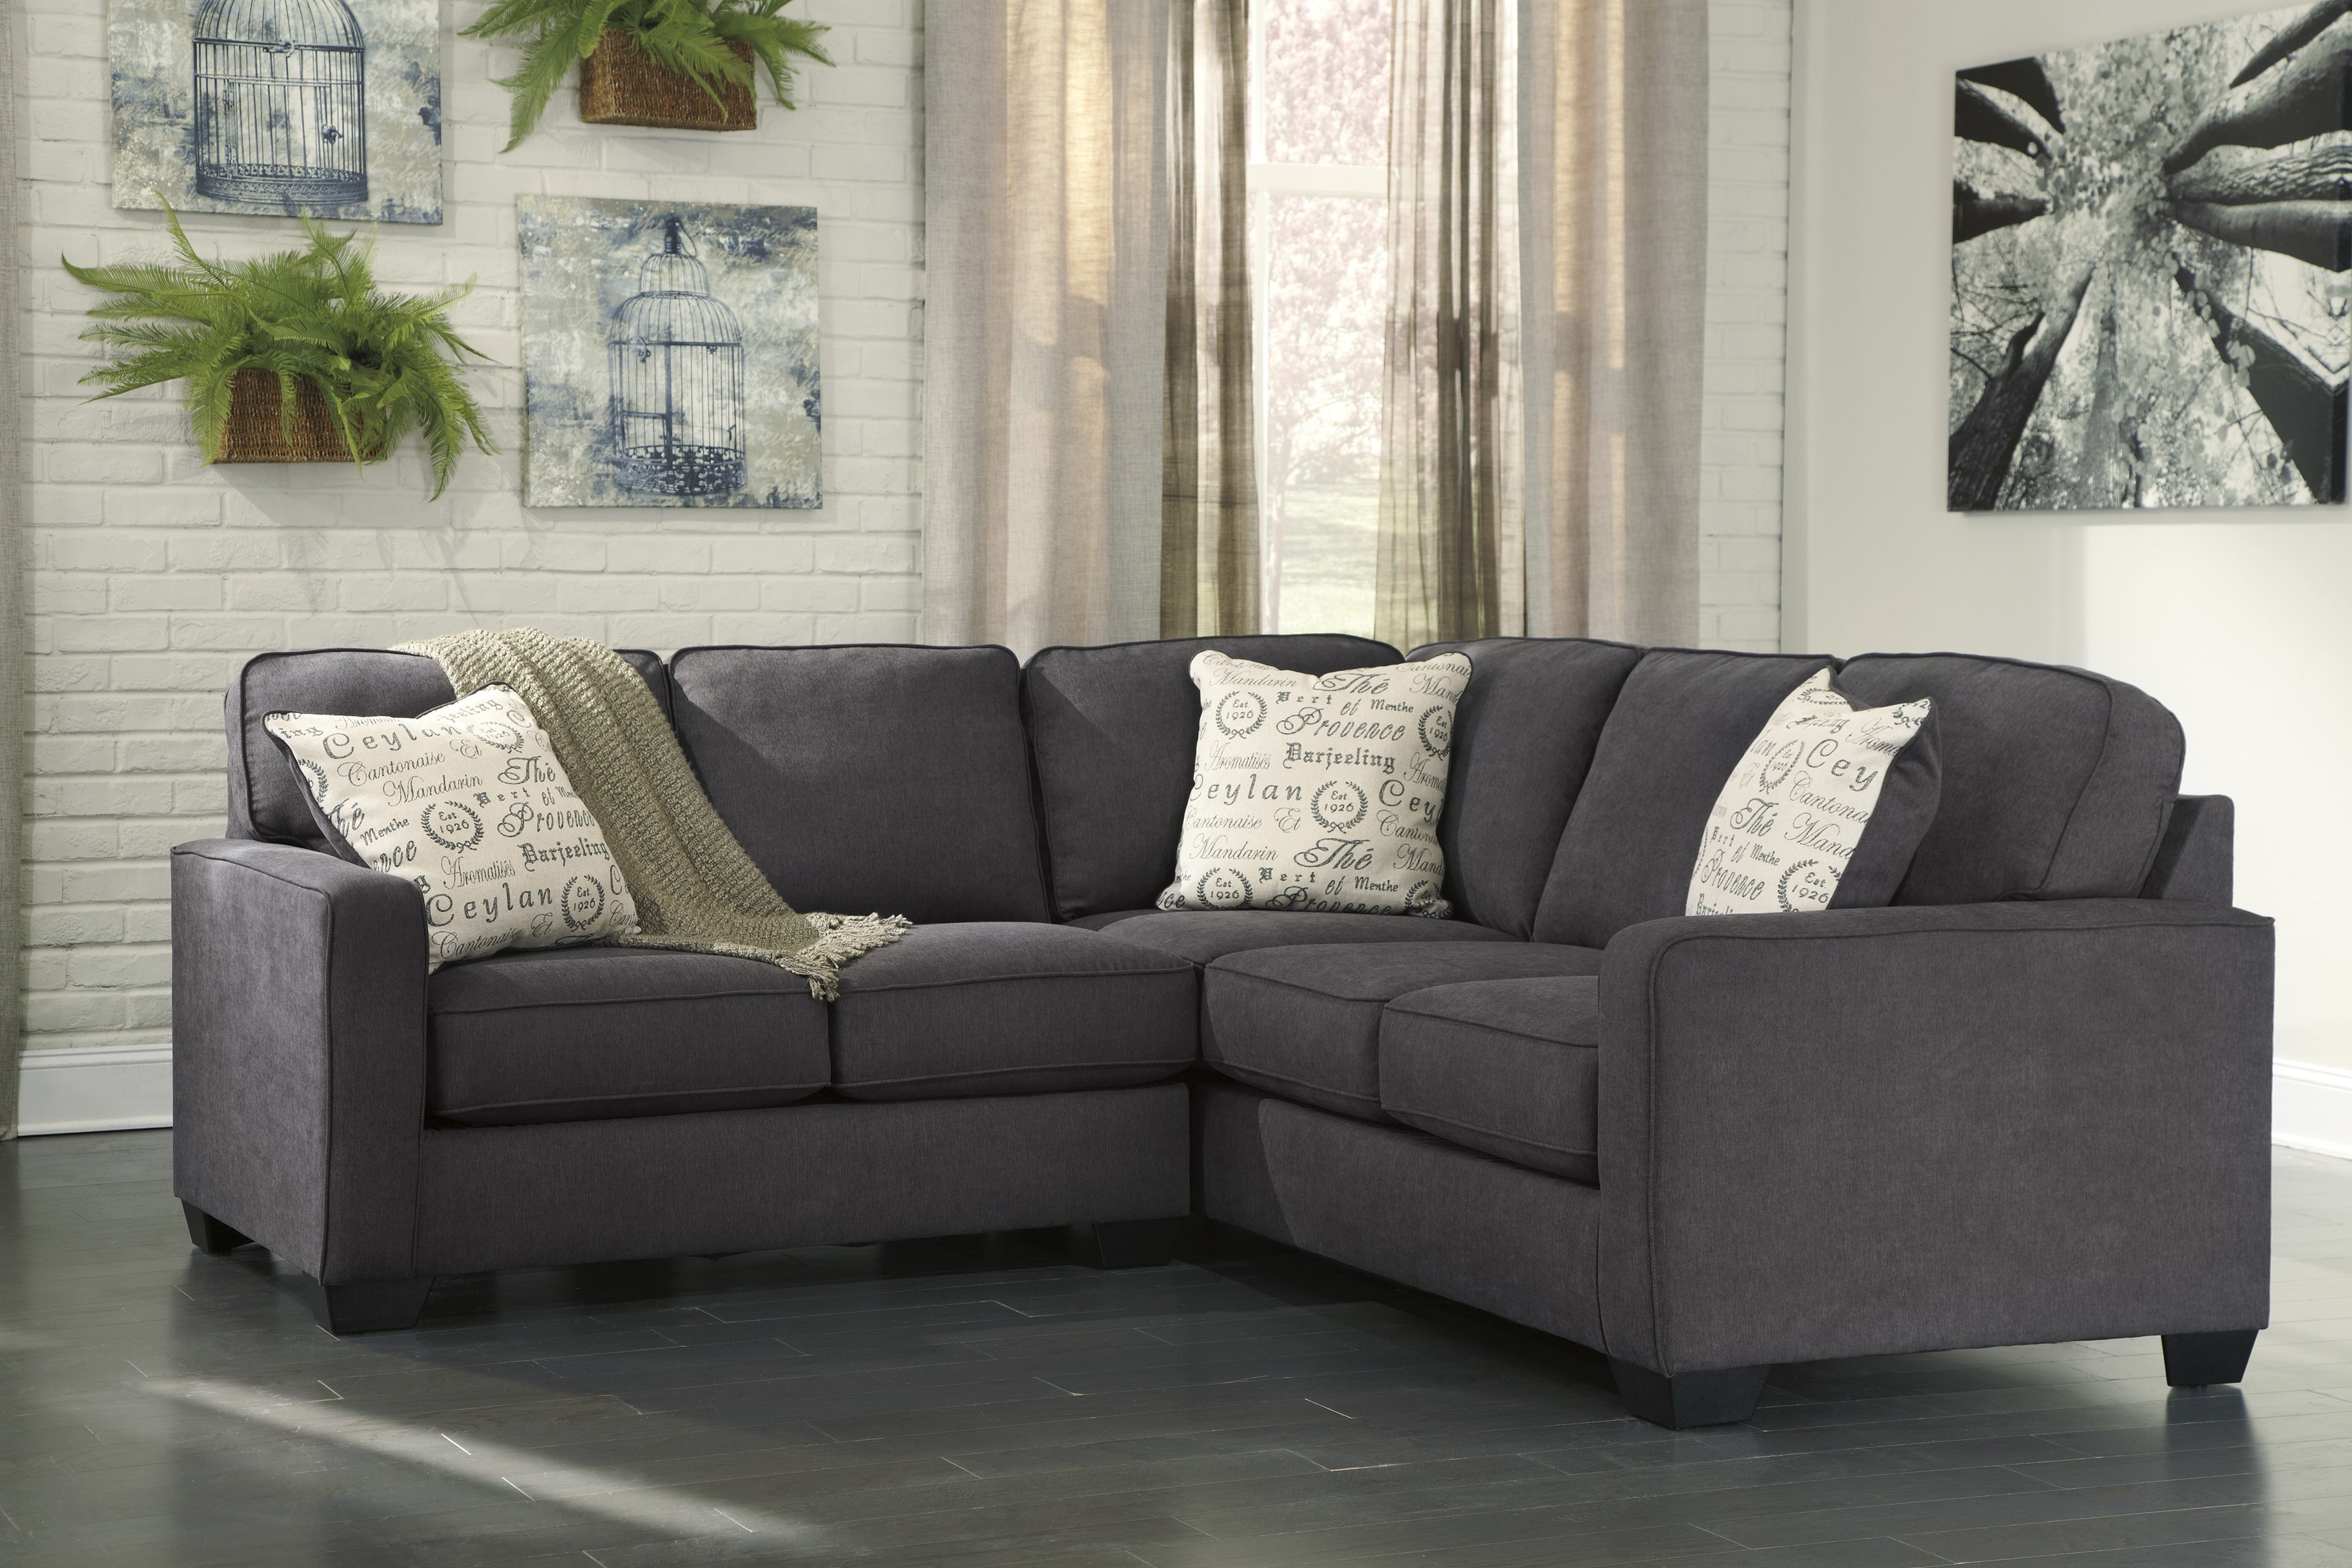 Widely Used Kerri 2 Piece Sectionals With Raf Chaise Pertaining To New 2 Piece Sectional With Chaise Lounge – Buildsimplehome (View 20 of 20)